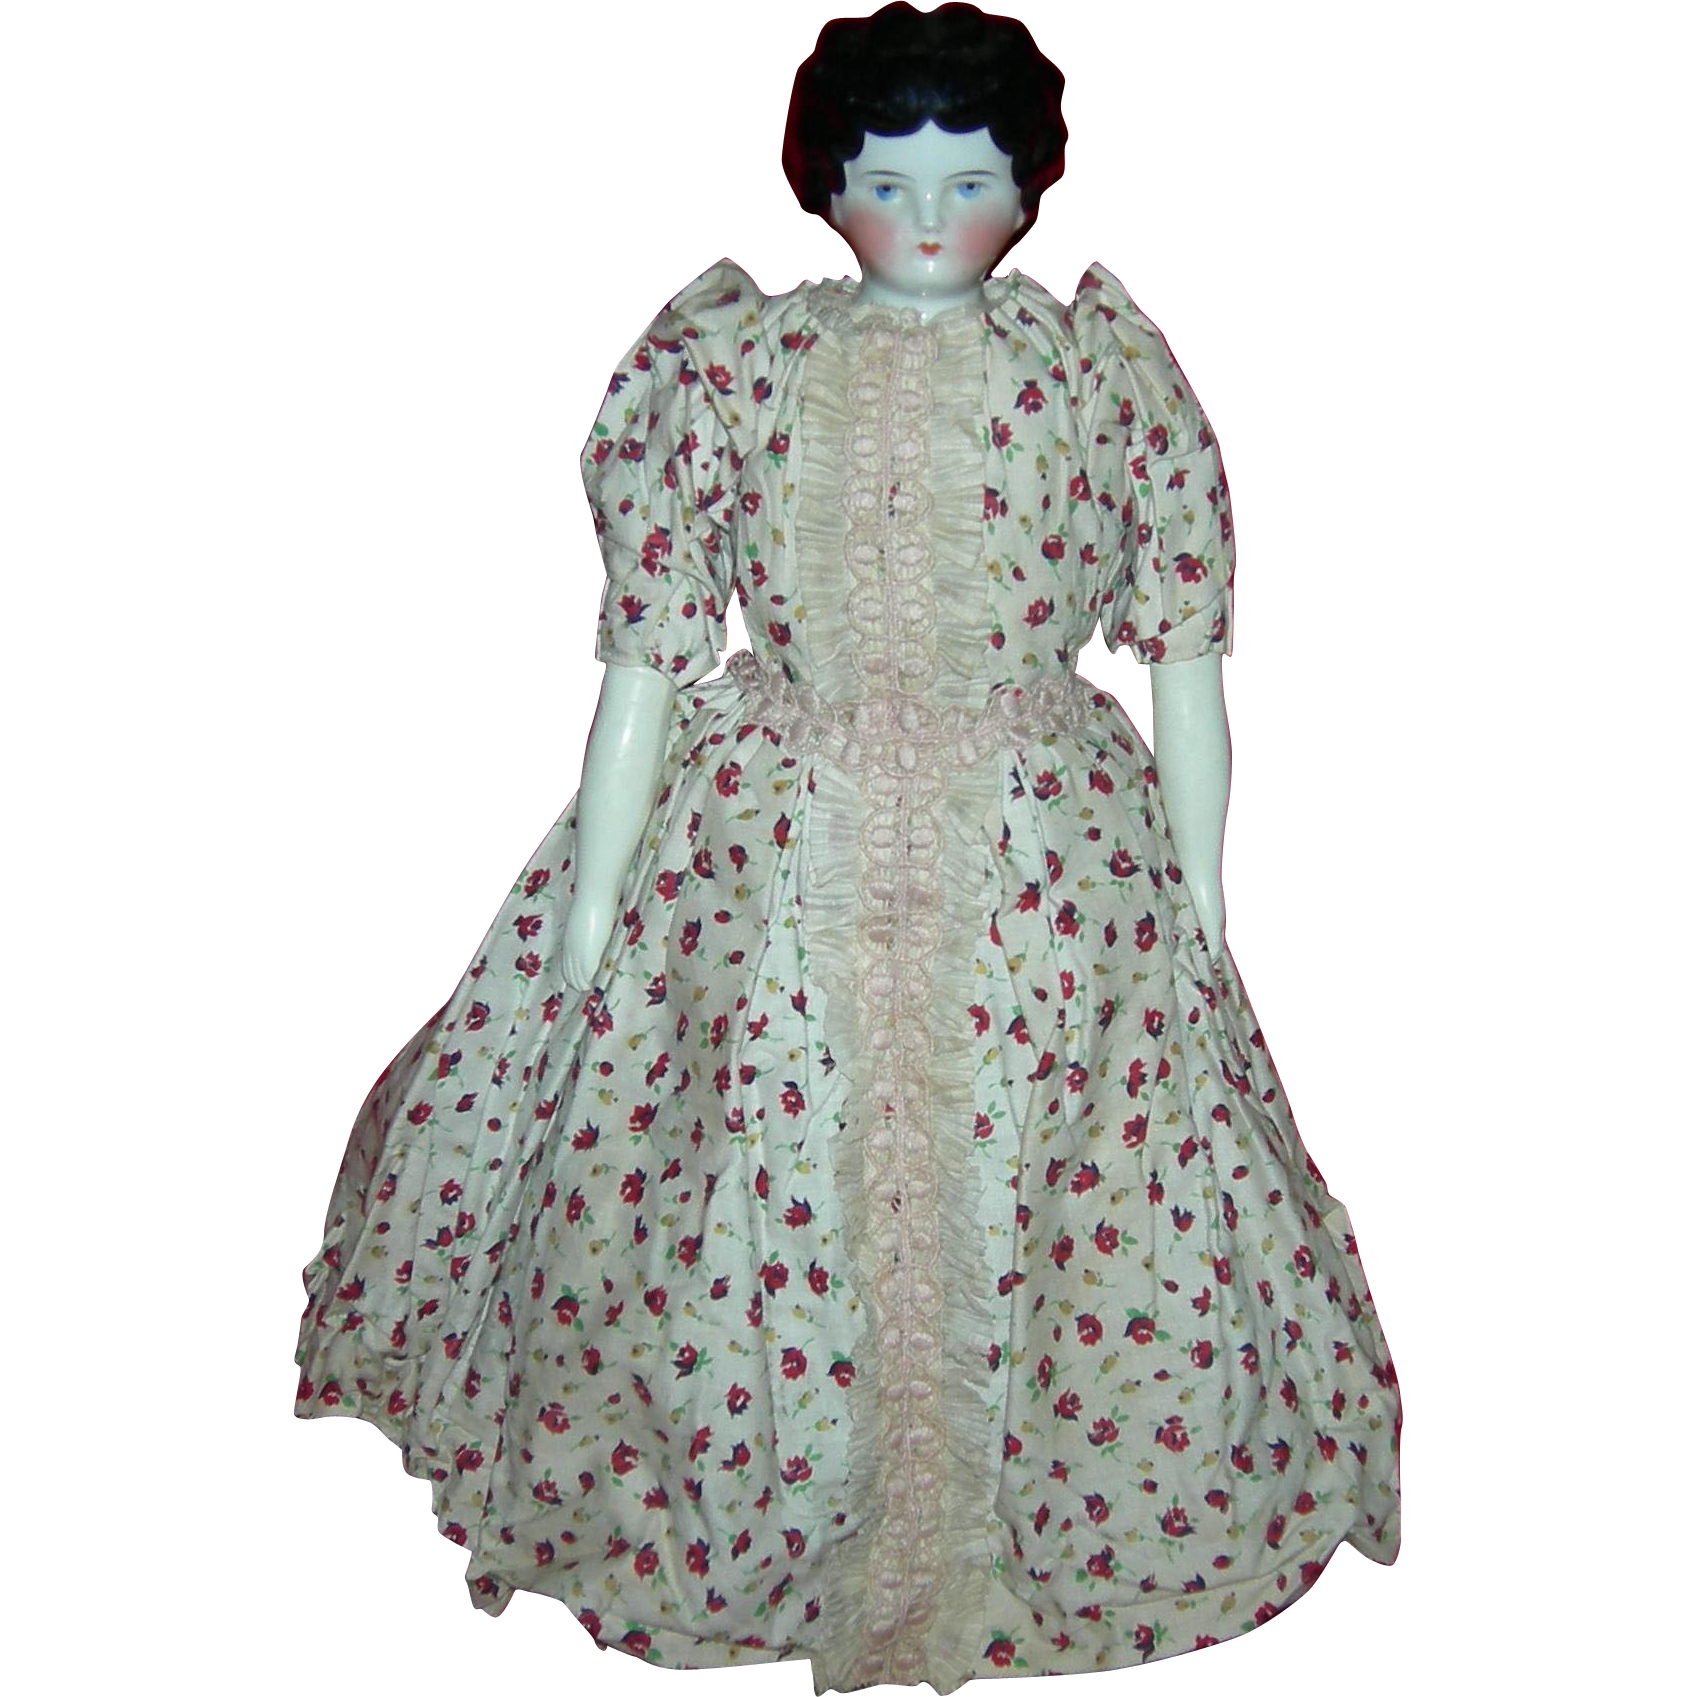 """CHINA HEAD - 15"""" - Old Dress & Undergarments - Paper & Bill From Owner!!"""